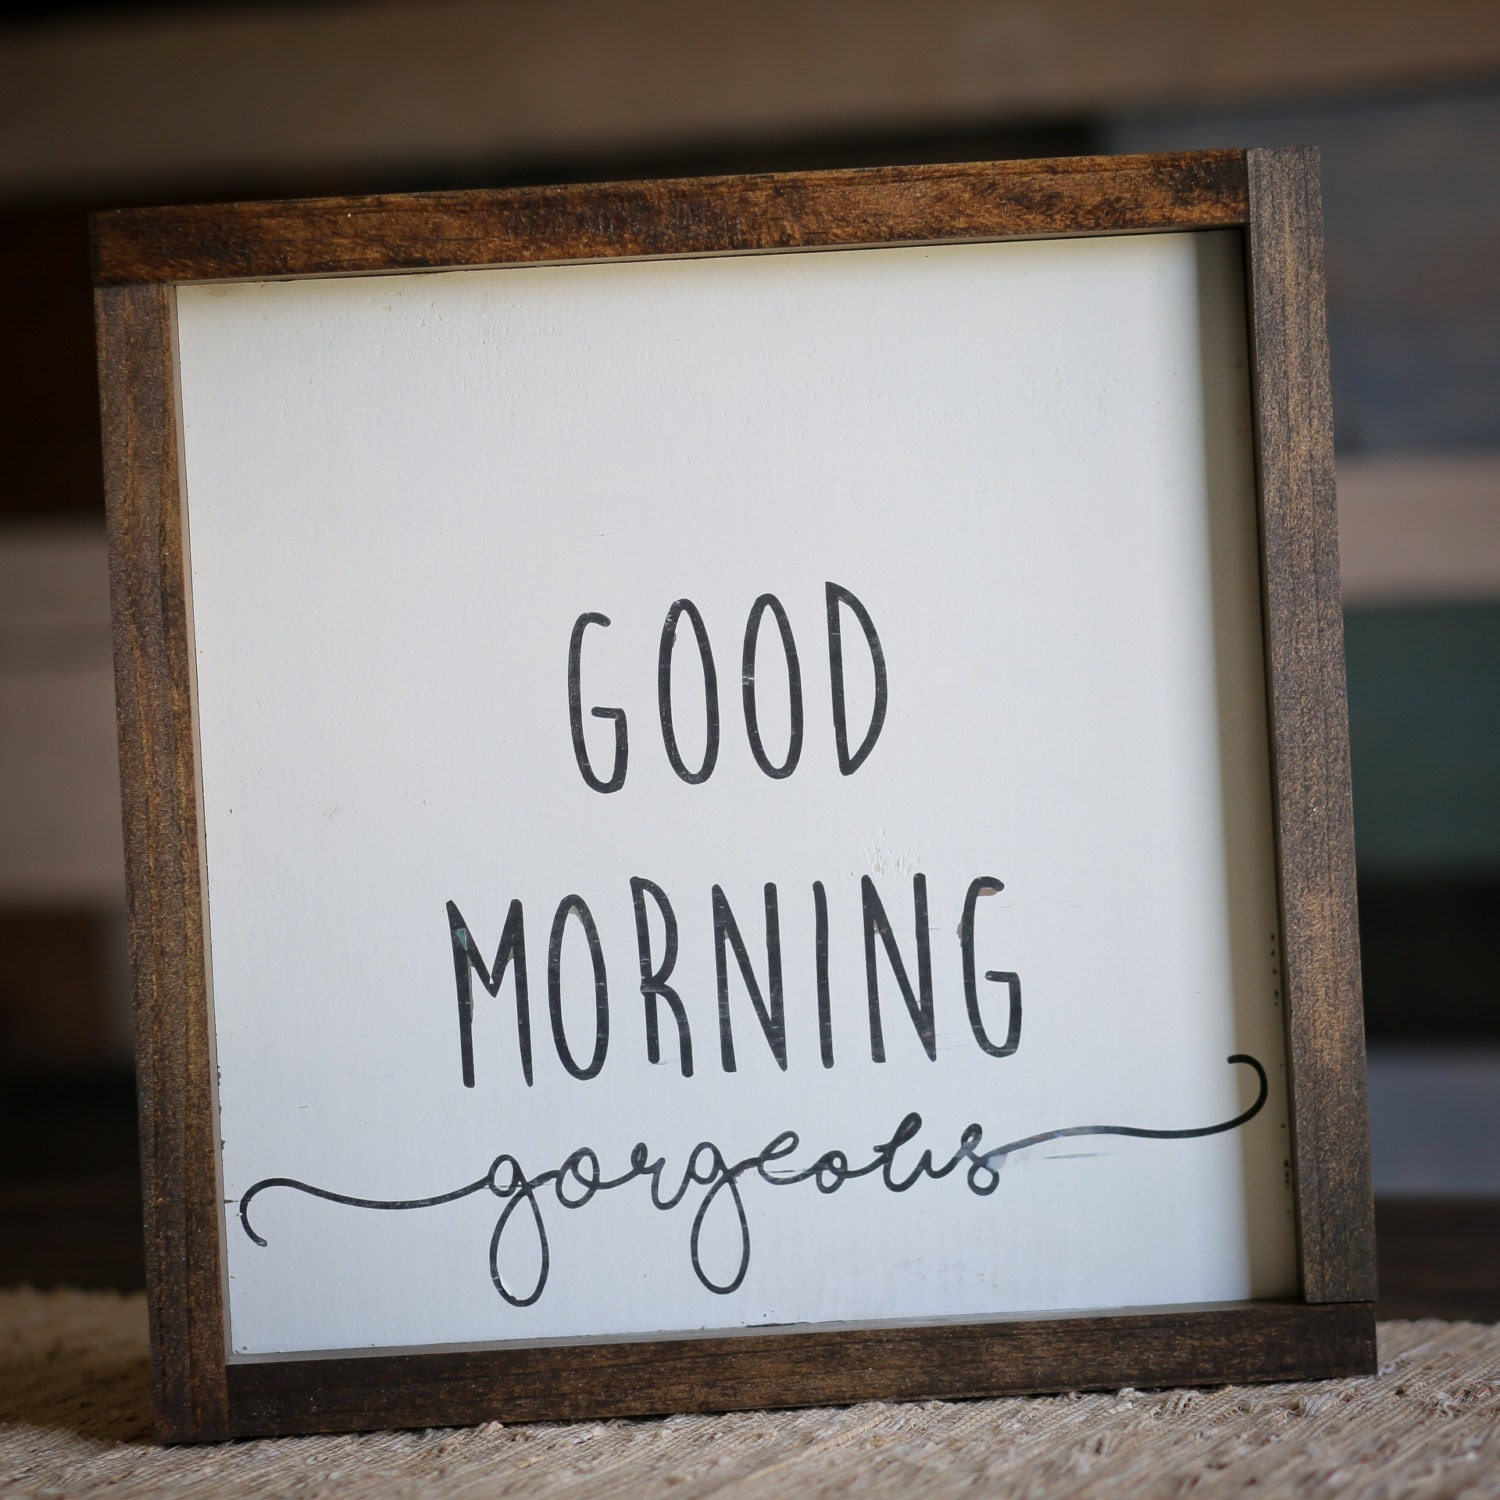 Good Morning Gorgeous Hello Handsome Wood Sign Boxed Sign. What Is A Traveling Nurse James Allen Review. How To Get Rid Of Buttocks Acne. Kaplan Online Nursing Review. Seattle Photography Schools Gre Prep Courses. Resume For Pediatrician Analyzing Web Traffic. Depression Drugs That Cause Weight Loss. Check Credit Score Canada Denial In Addiction. Preapproval Vs Prequalification